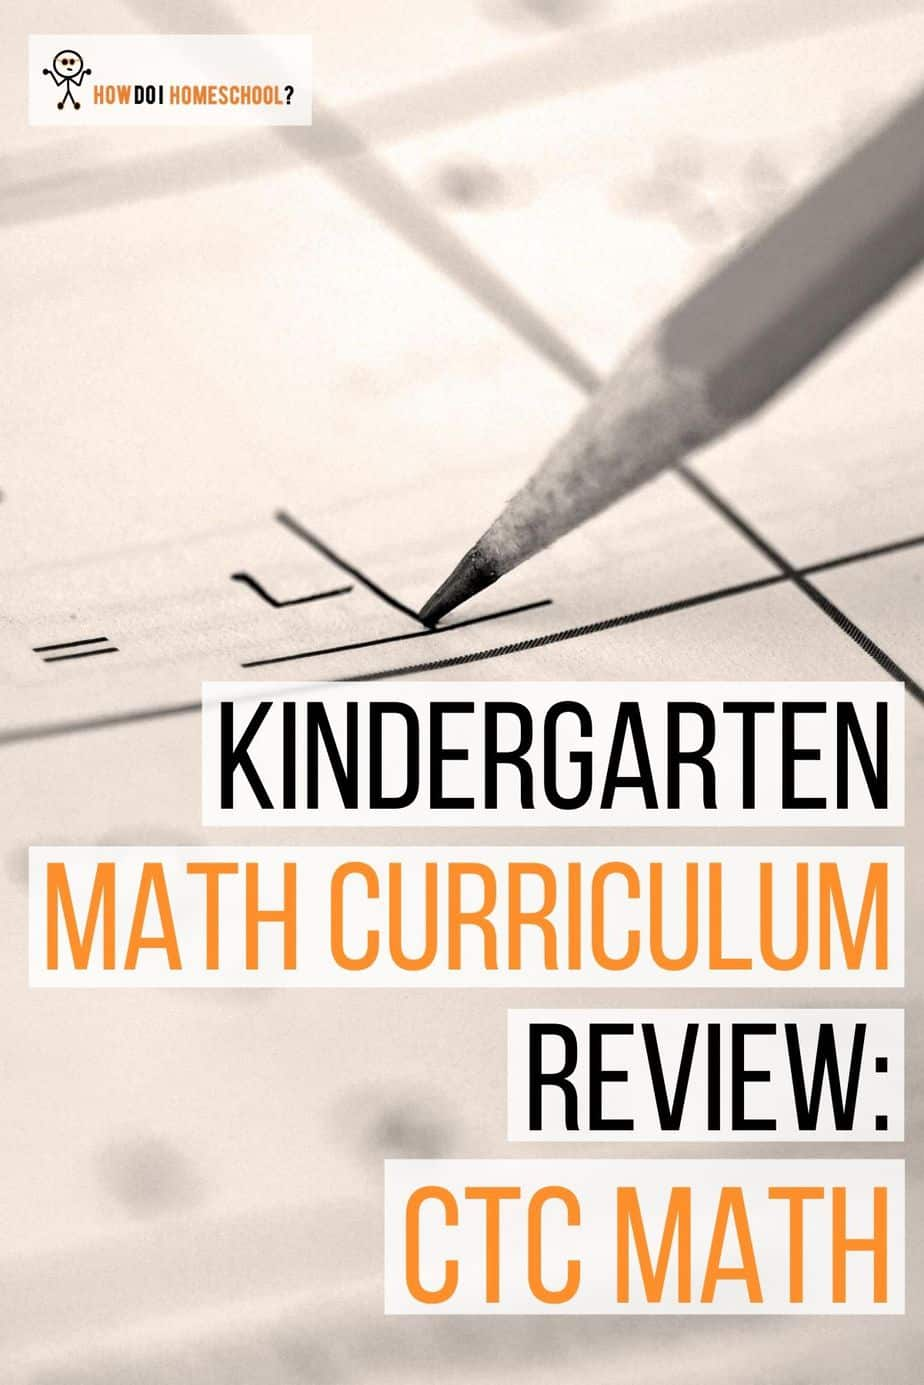 We do a review of the CTC Math curriculum to see if you can use it for Kindergarten. #CTCMath #mathkindergarten